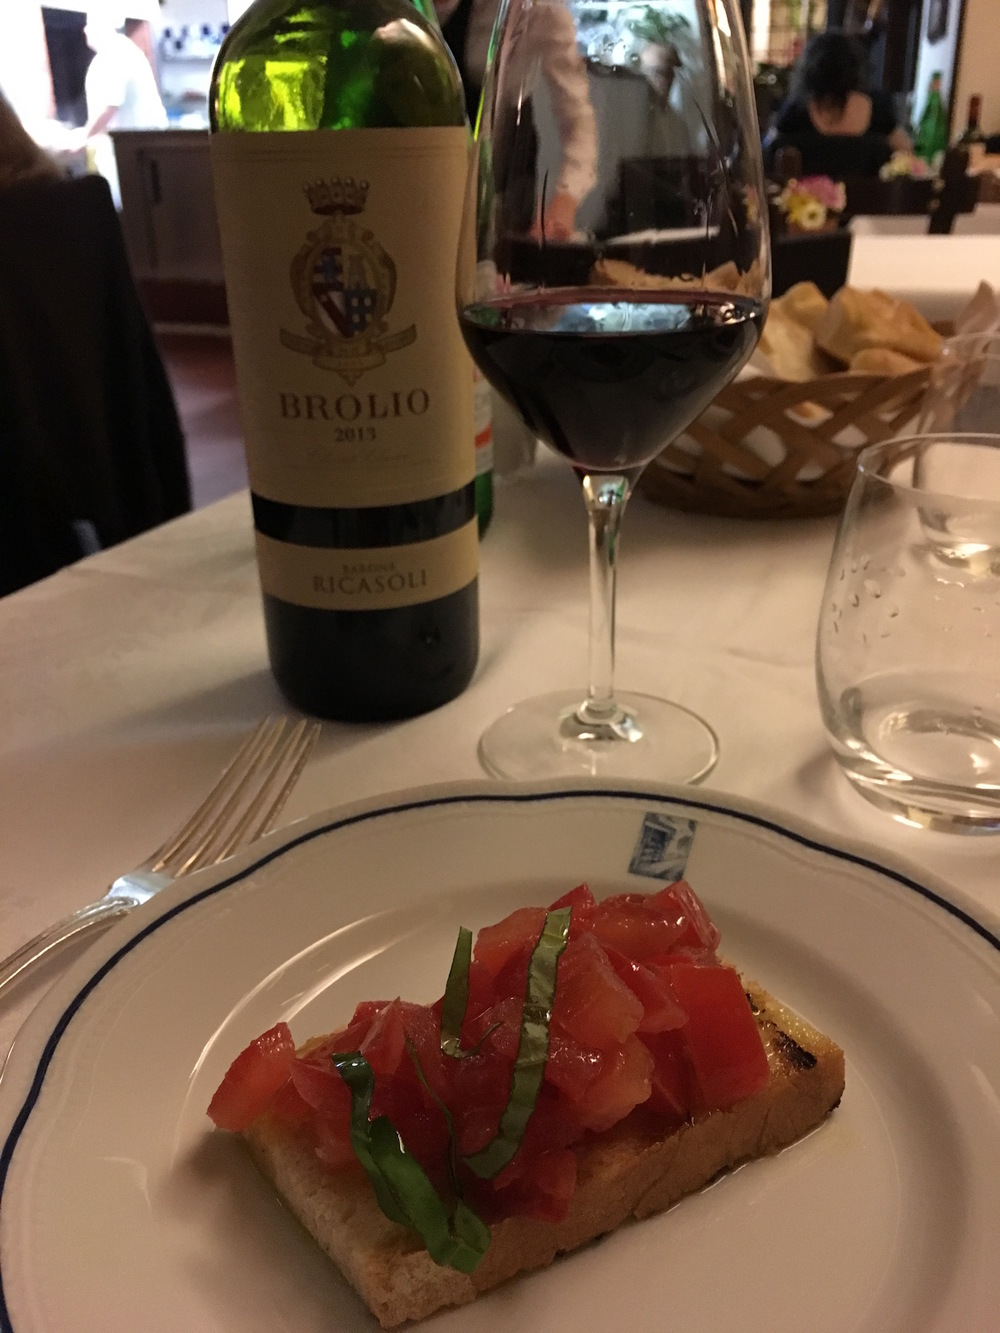 Chianti and bruschetta